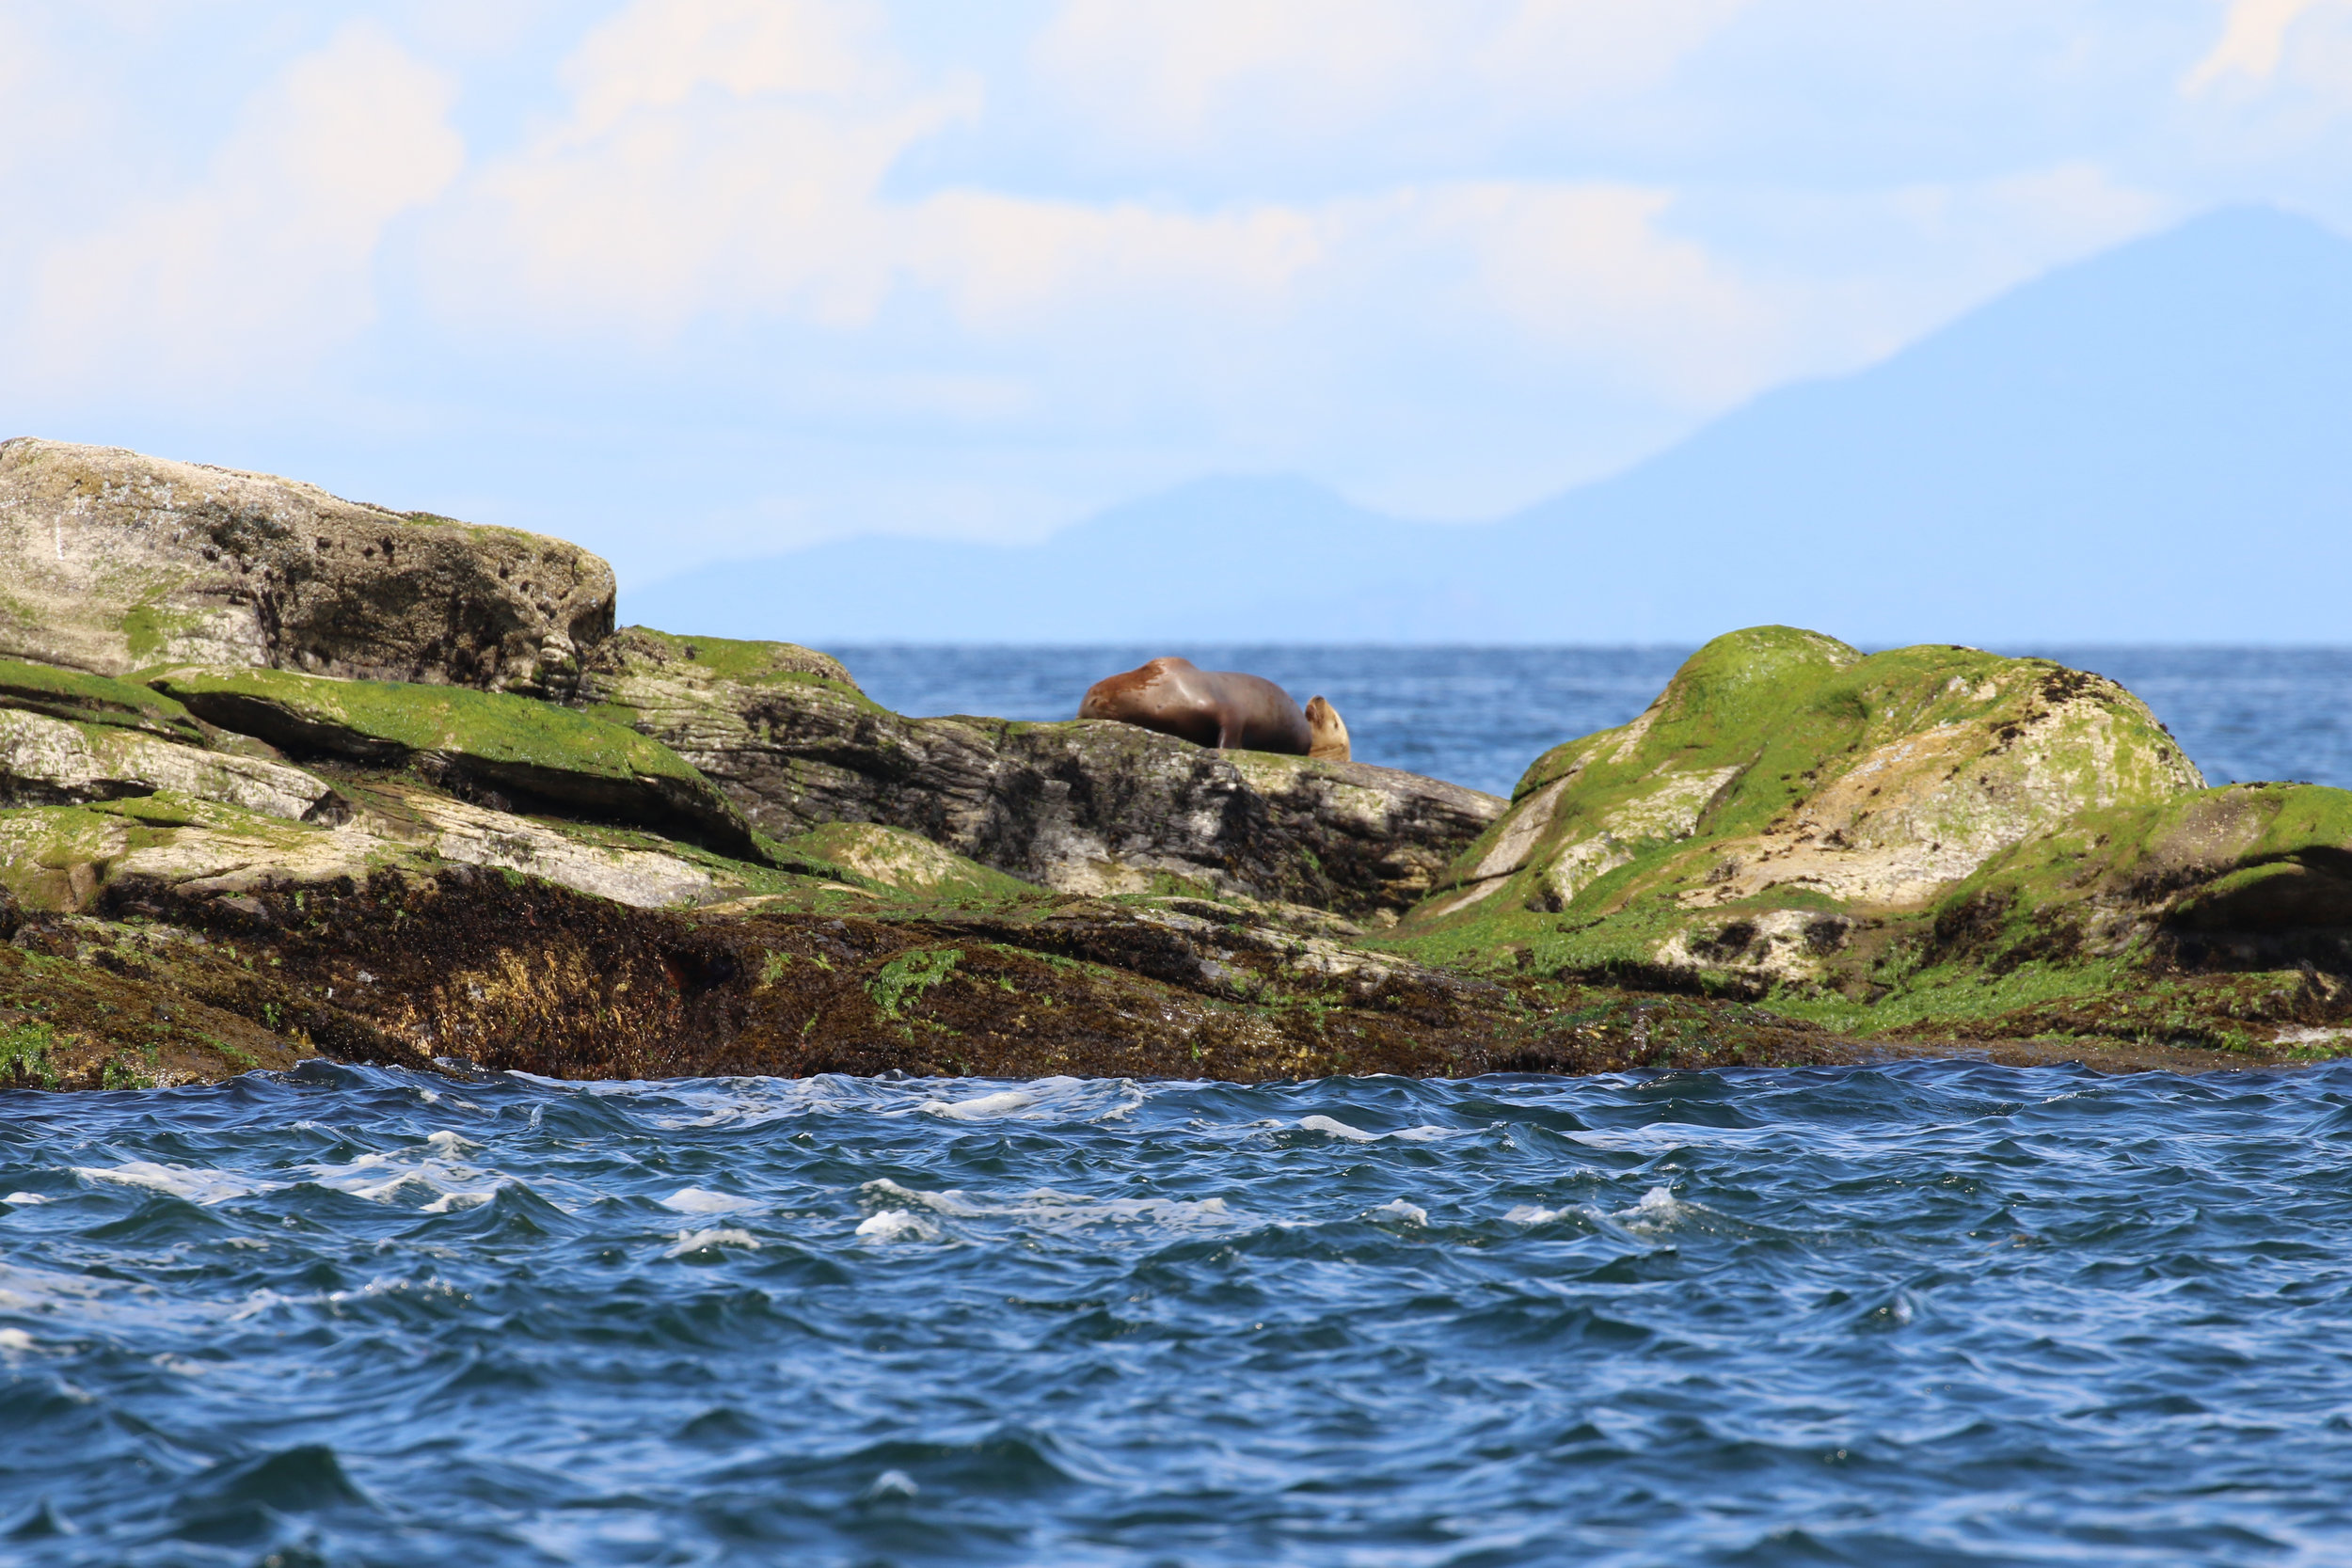 Some lazy Steller Sea Lions hanging out on Entrance island. Photo by Val Watson.